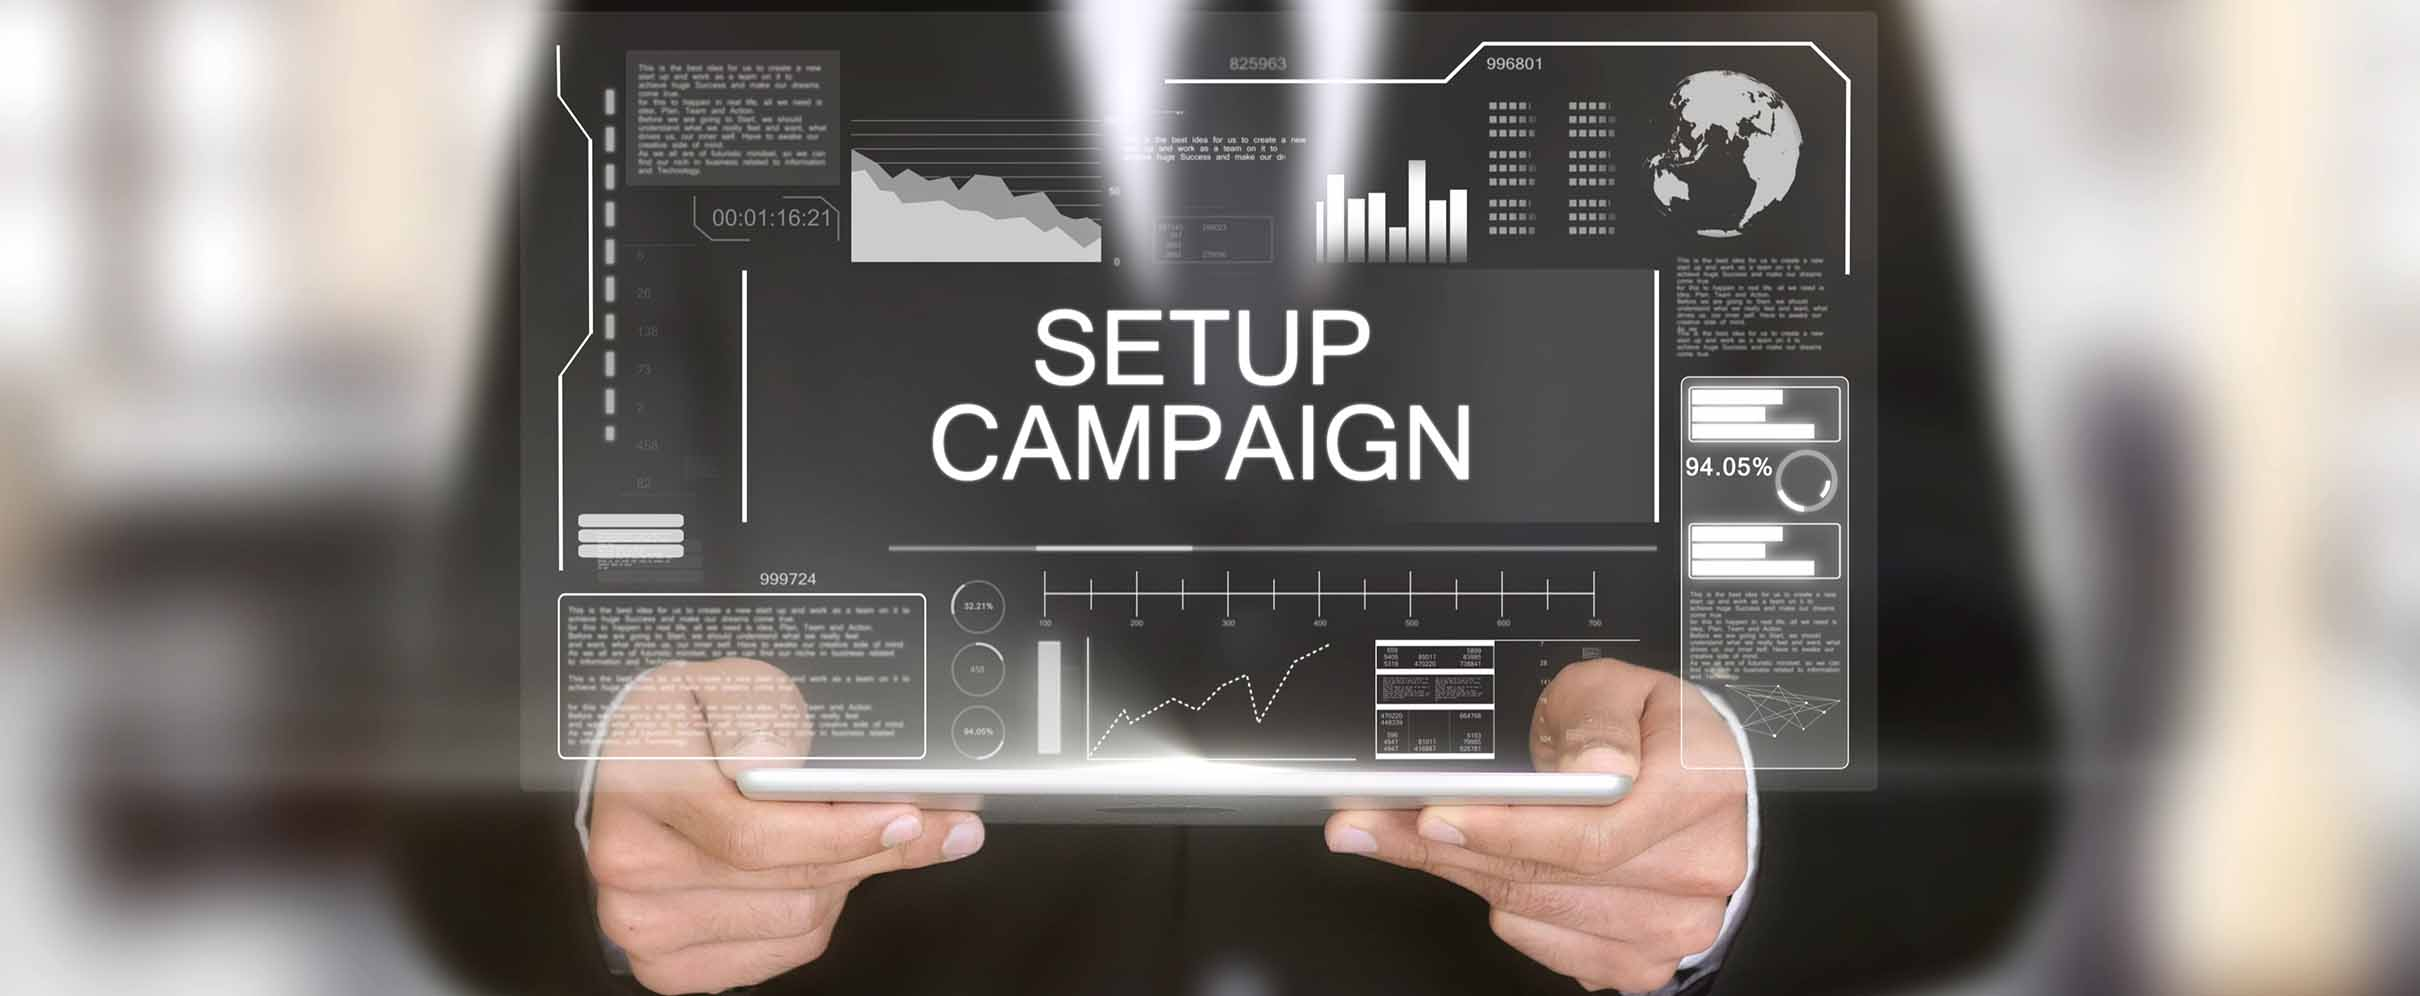 Quickly set up new campaigns with the Business Manager.